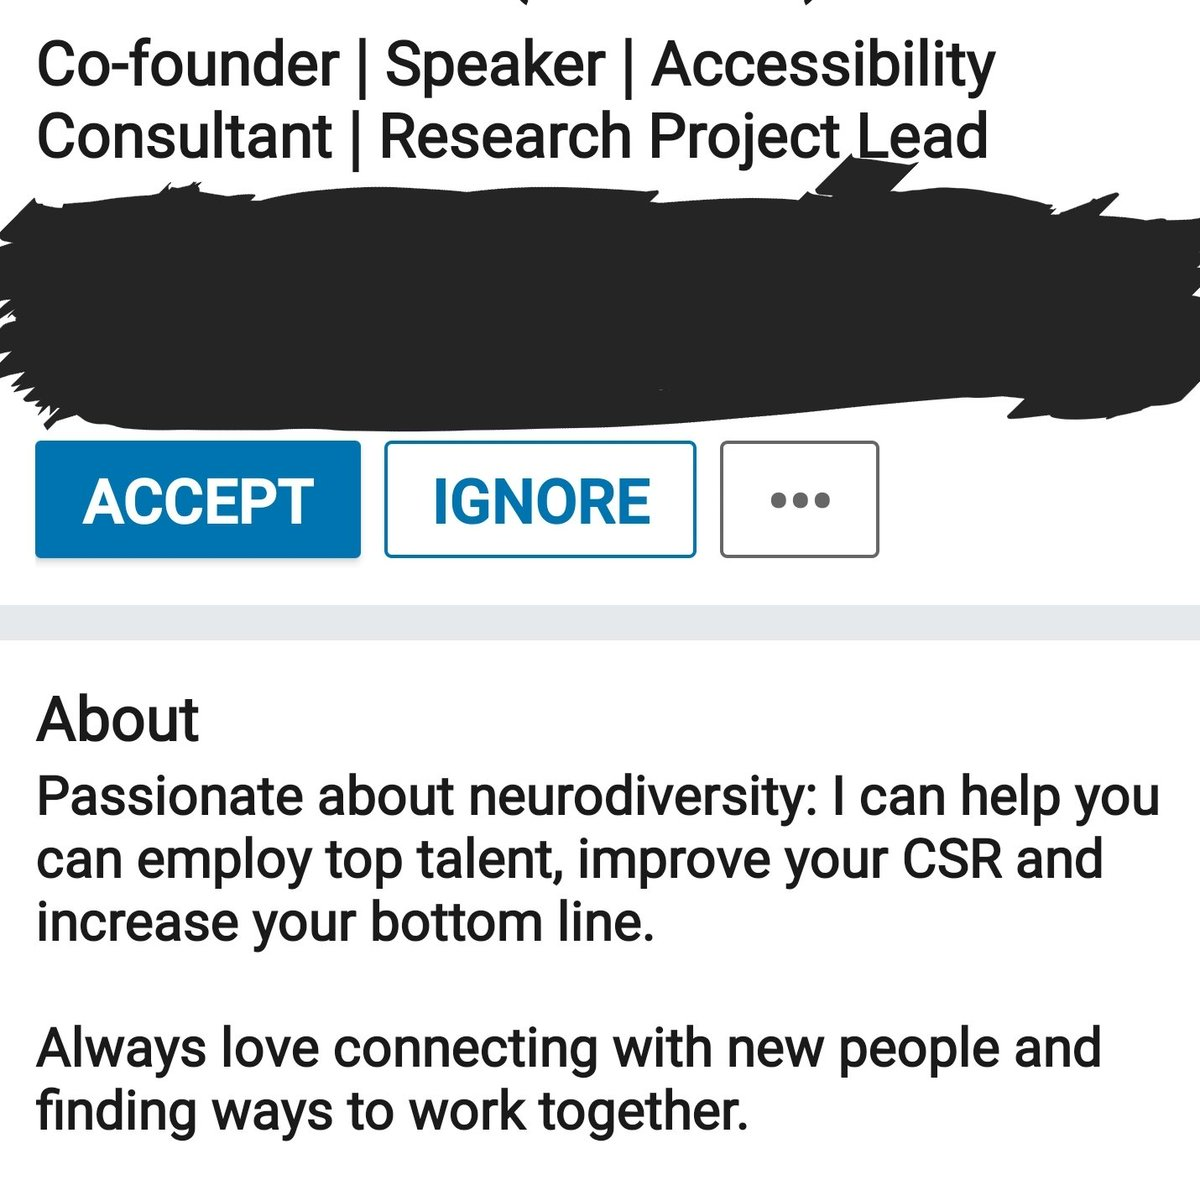 Controversial opinion: if you claim to be an Accessibility expert AND one who cares about Neurodiversity, disability don't invite me to participate in Zoom discussions. There are better platforms. Signed a multiply-disabled #ActuallyAutistic journalist & disability campaigner. pic.twitter.com/9PKTr85W5r